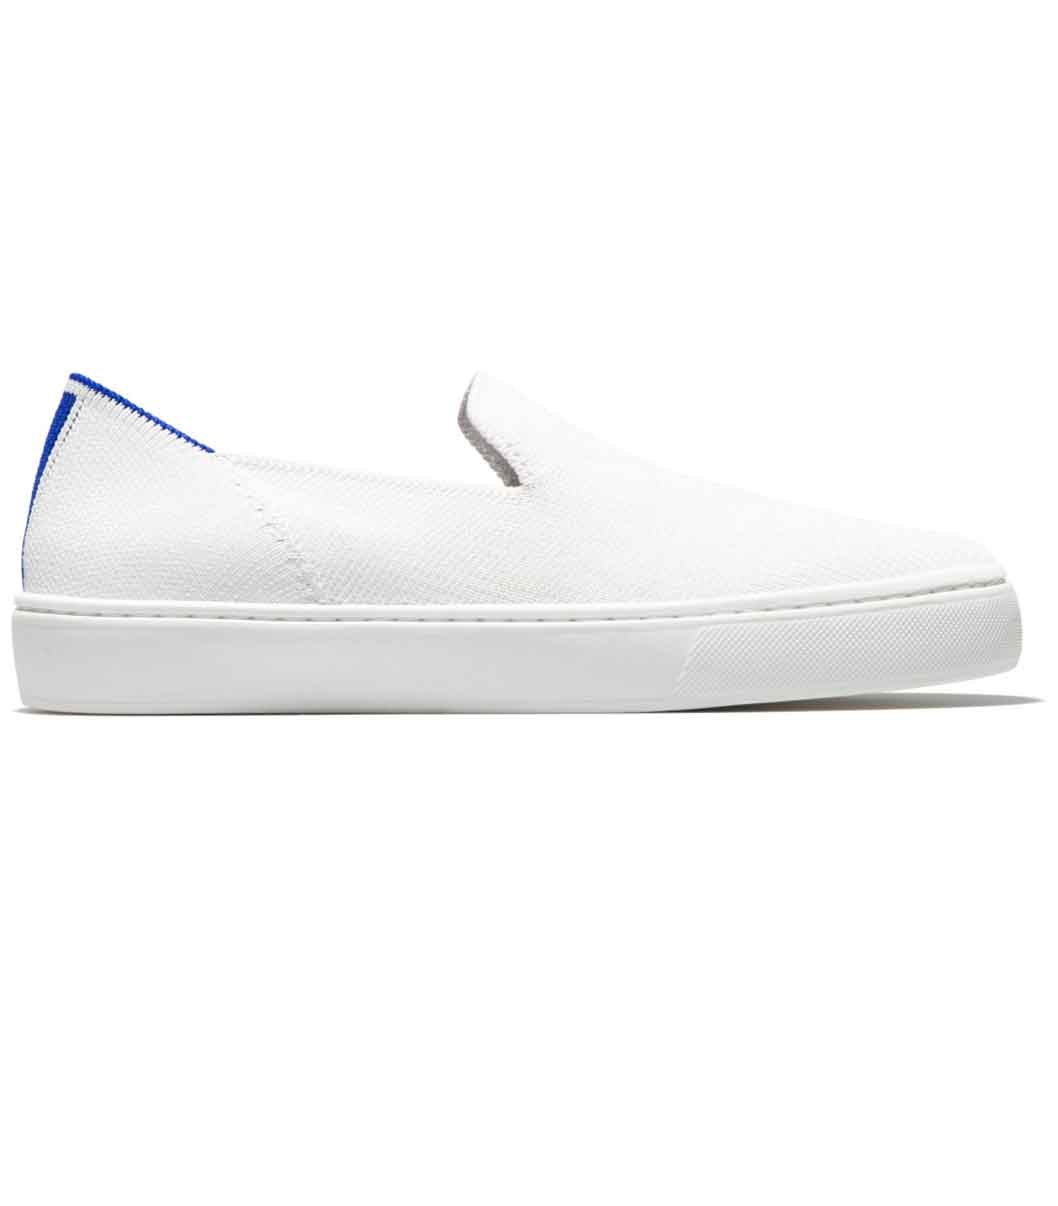 Rothy's Bright White Sneaker | Sustainable White Sneakers Brands You Should Know